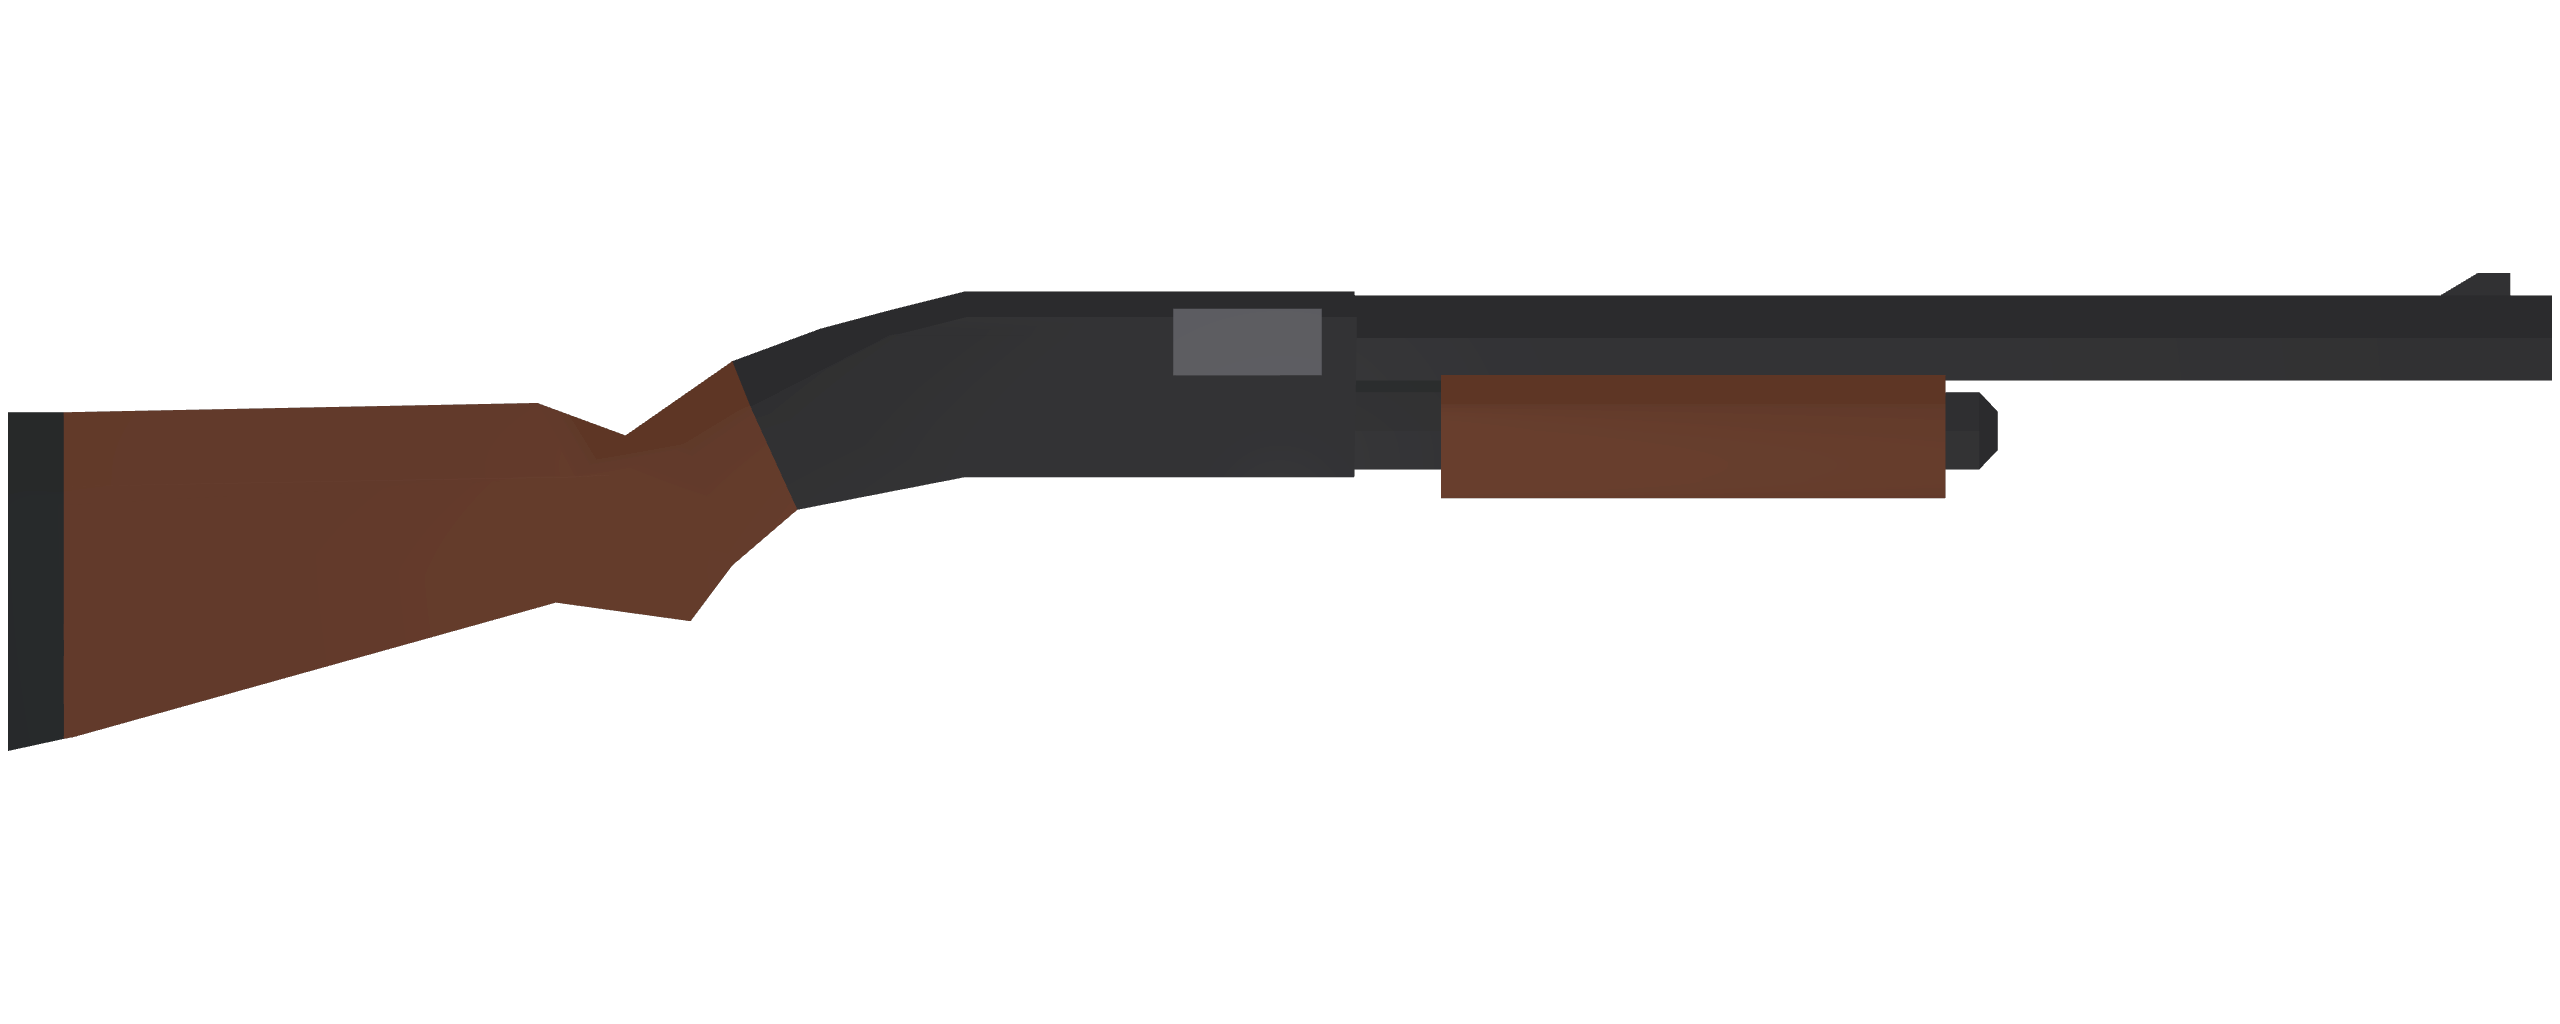 Unturned Uncreated Warfare Mods & All ID List + Attachments - Neutral Weapons - BF0412D